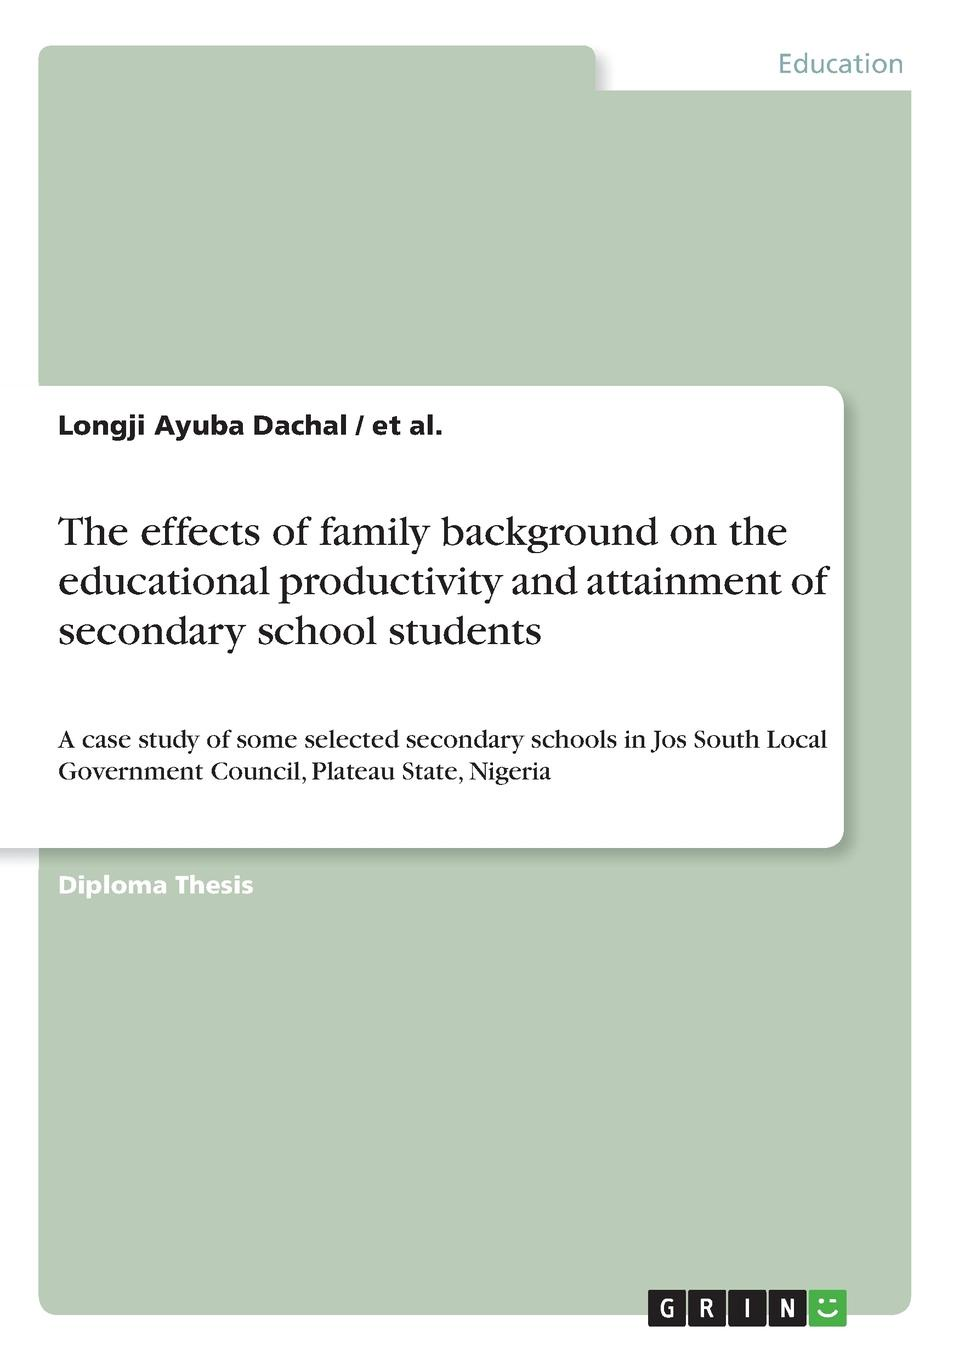 et al., Longji Ayuba Dachal The effects of family background on the educational productivity and attainment of secondary school students psychological adjustment of bangladeshi students at iiu malaysia